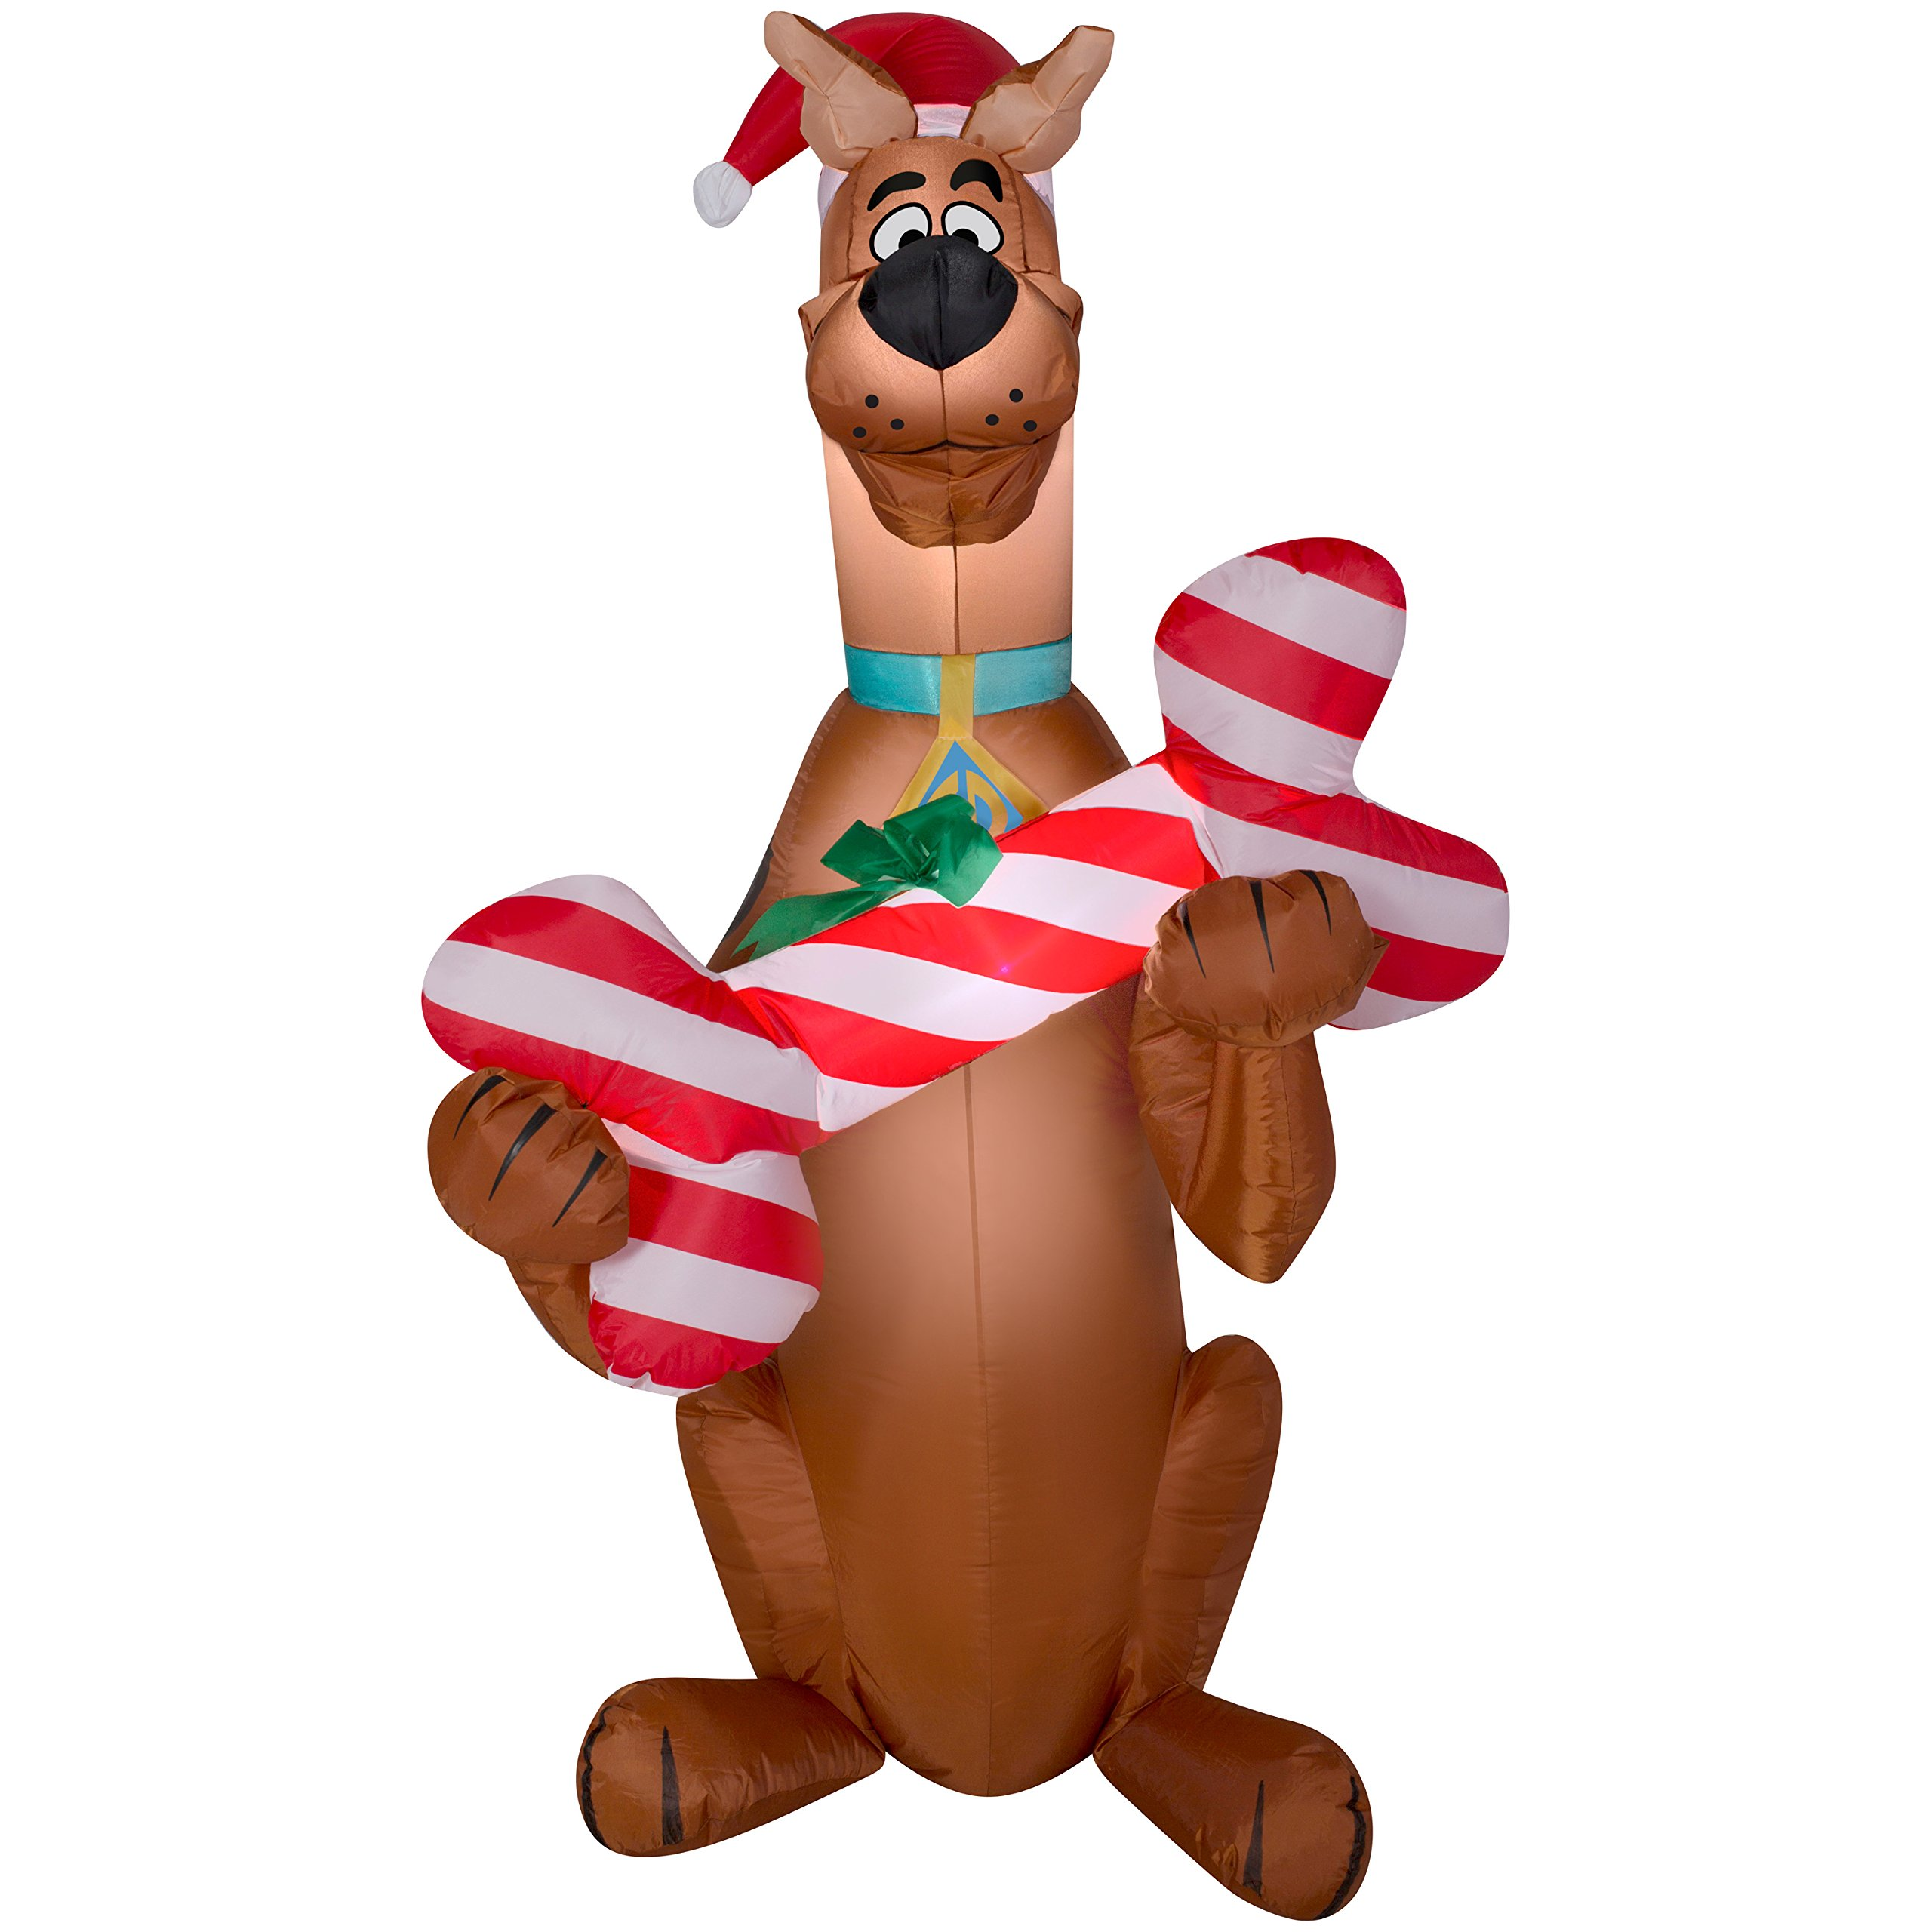 Christmas Inflatable 5 Scooby Doo in Santa Hat Holding Candy Cane Bone Airblown By Gemmy (1)